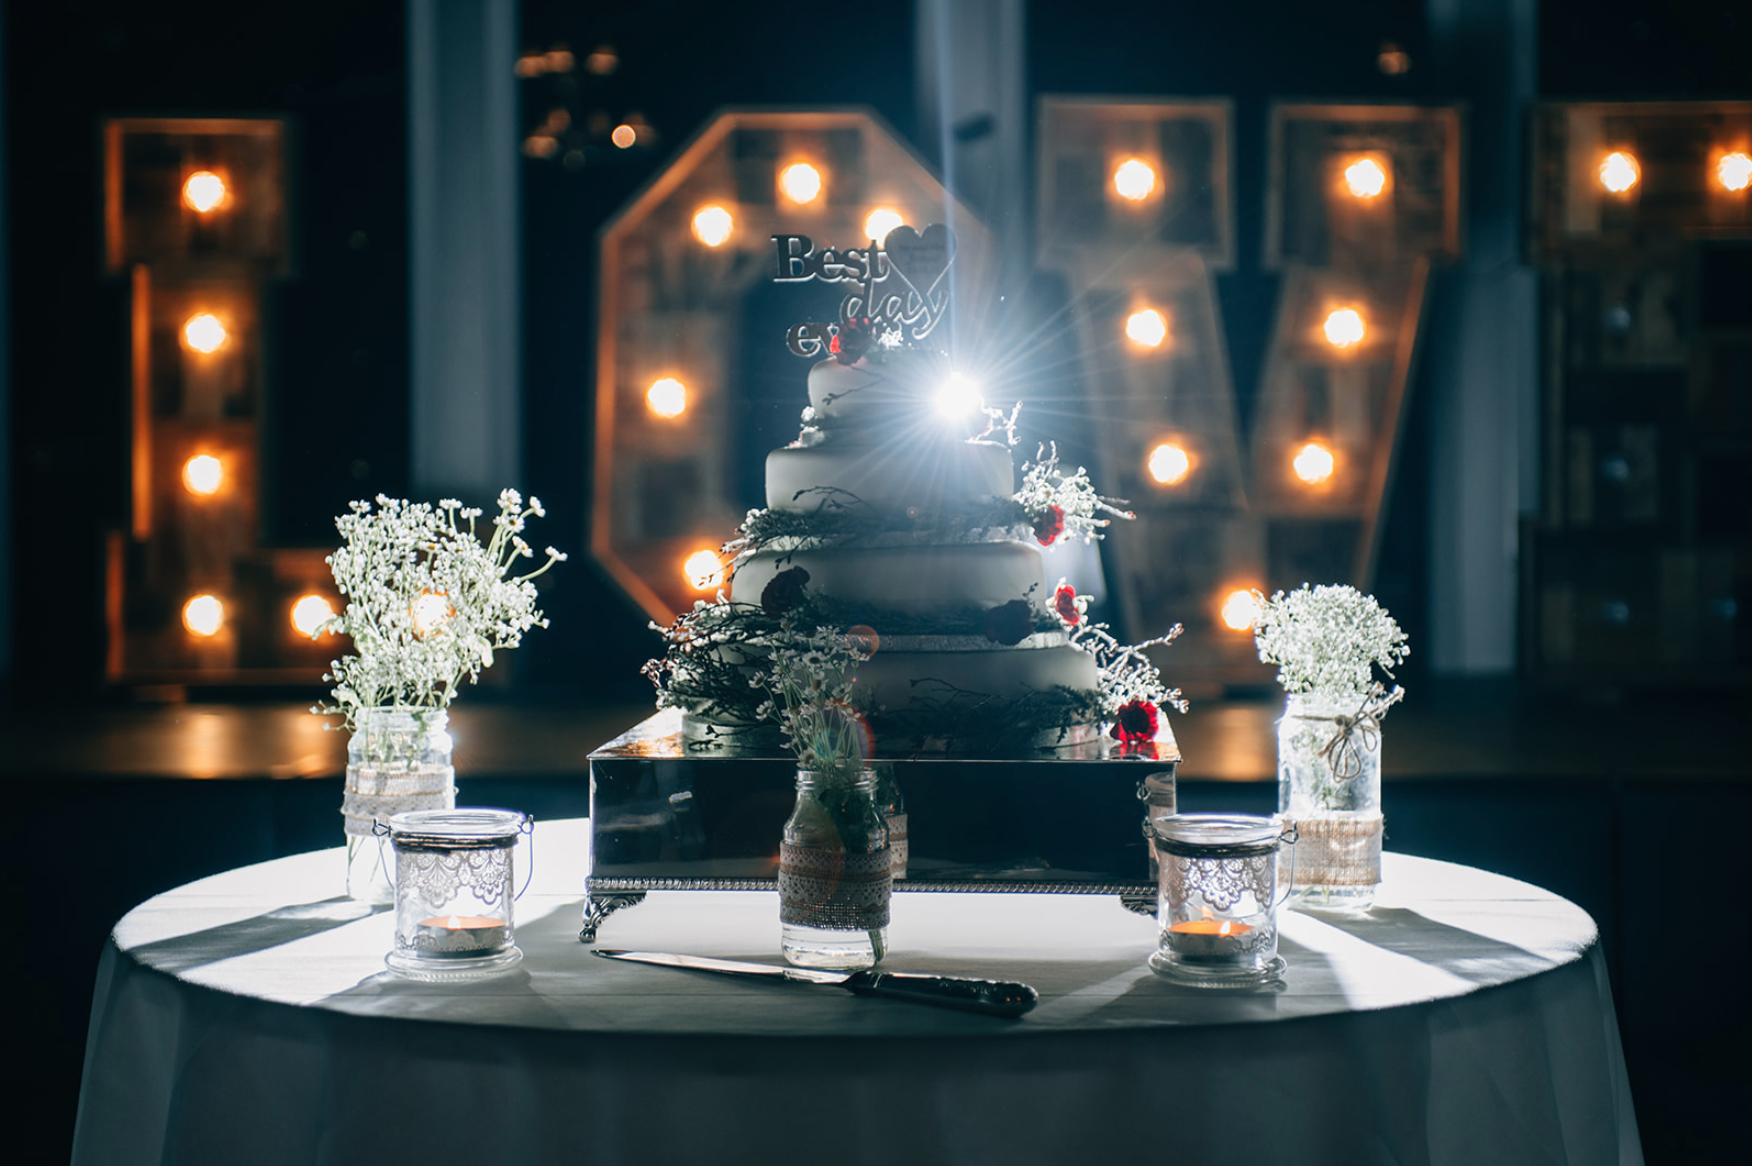 a wedding cake with a lens flare behind it